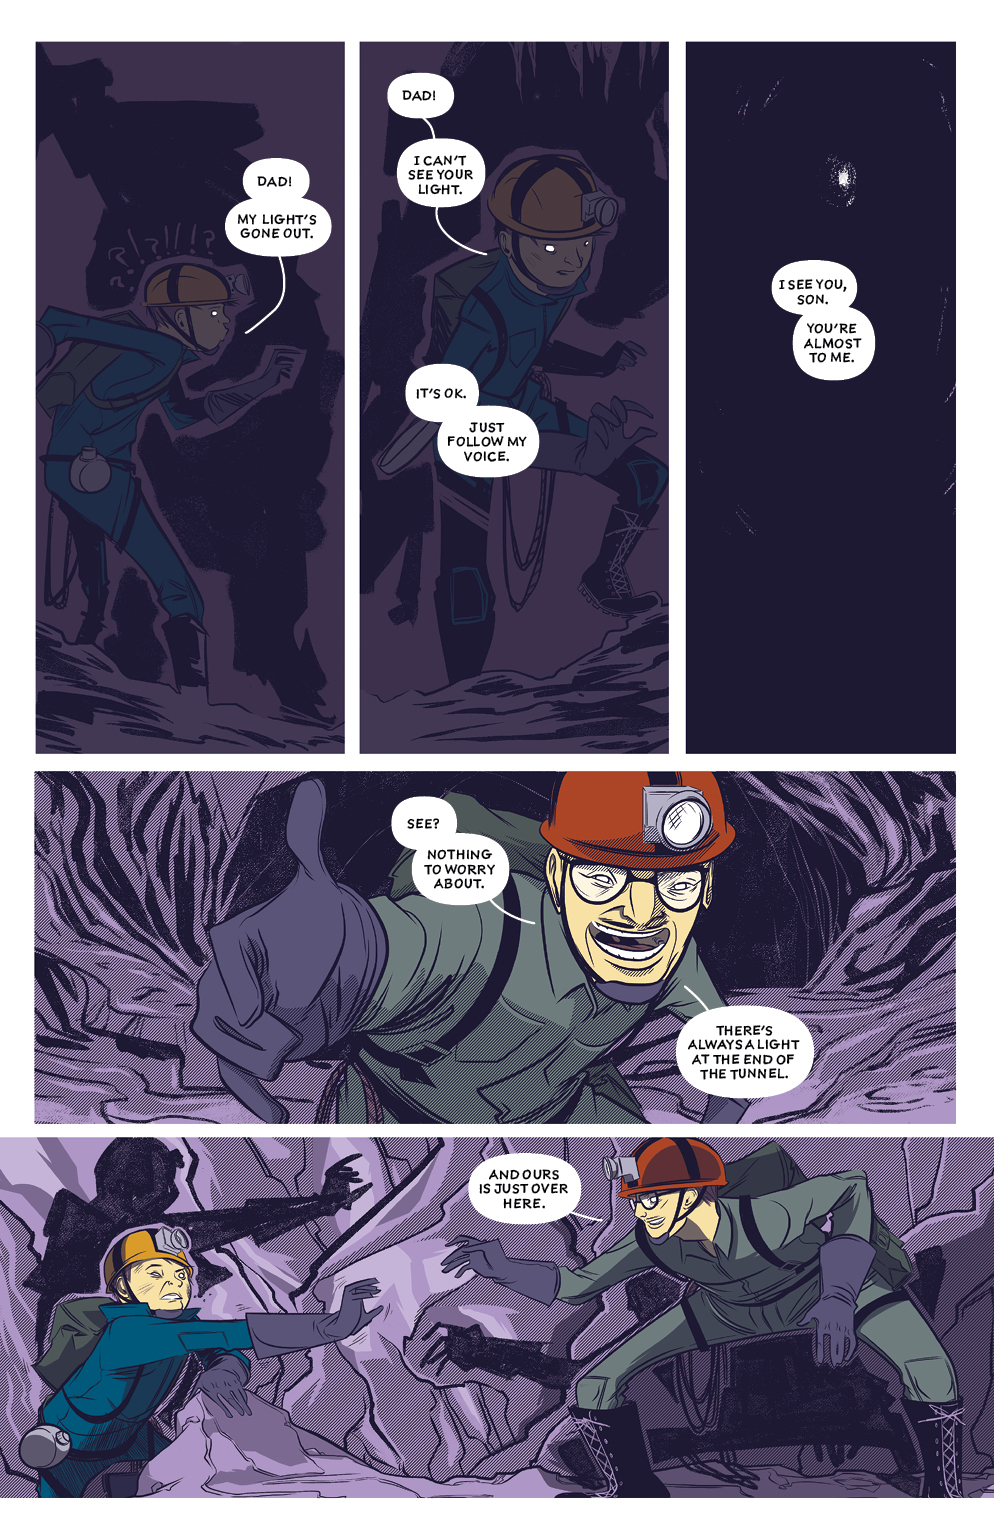 TunnelRat_Issue1_Pg1.jpg